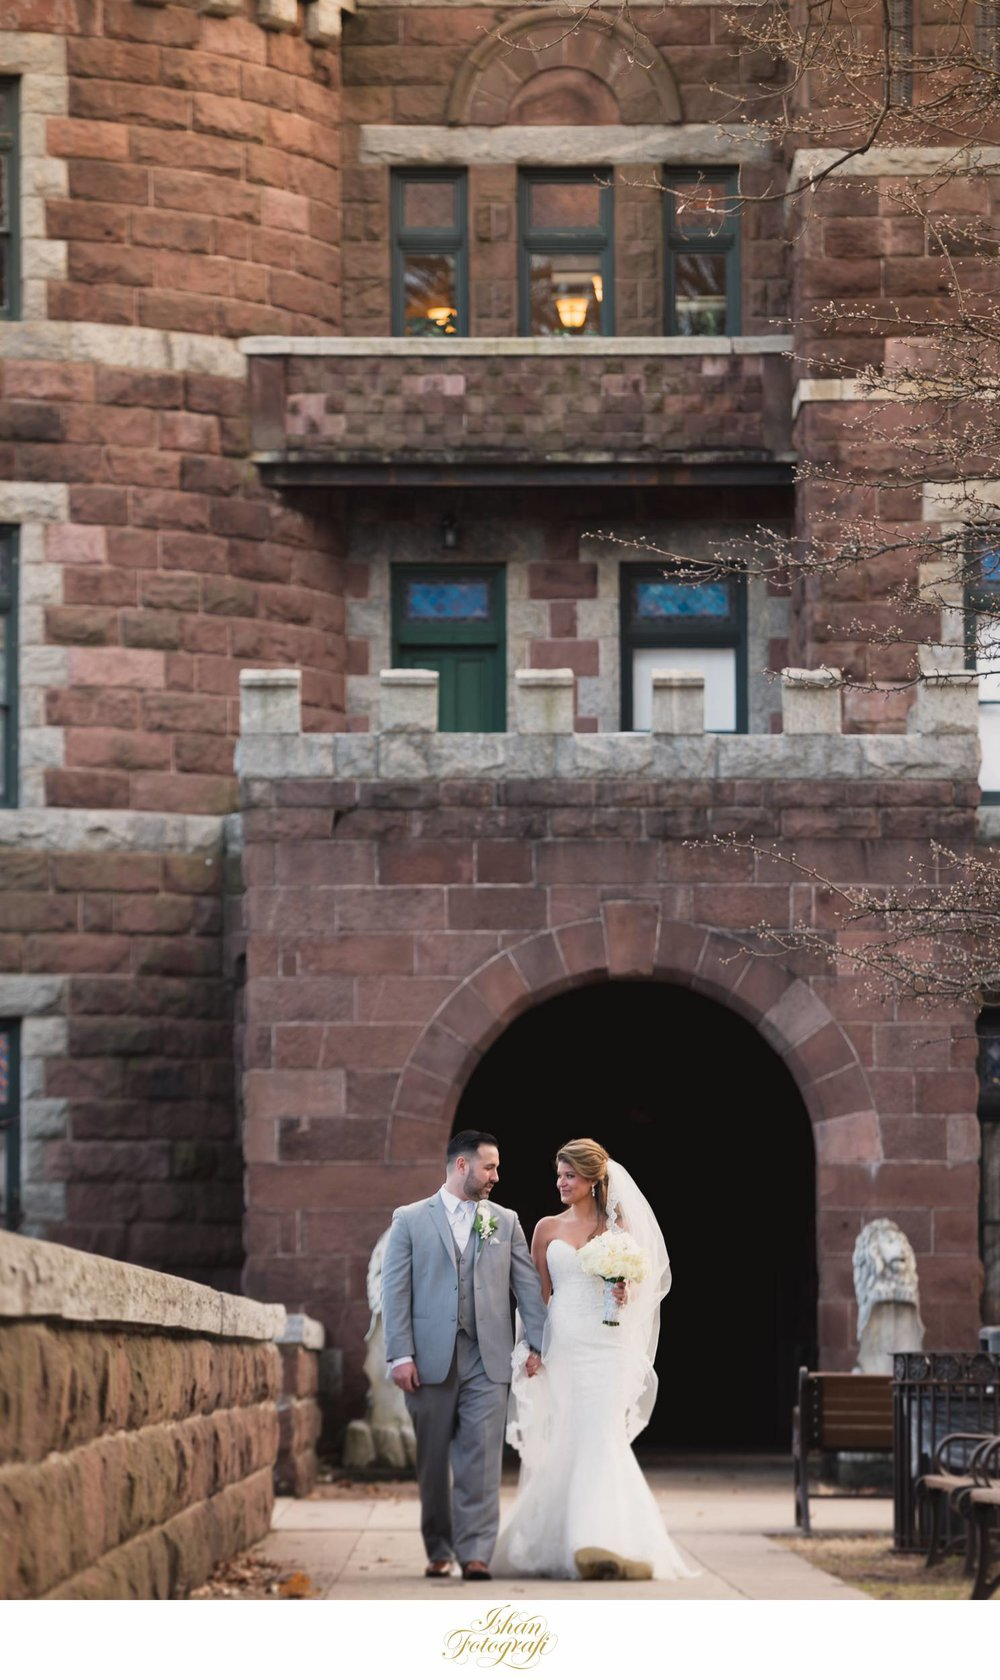 Lambert castle  is one of the many popular locations for wedding photography in North New Jersey. The castle has a lot of character and texture which works great for wedding portraits. It is also only a few miles away from  The Bethwood  which was the wedding venue for the reception.